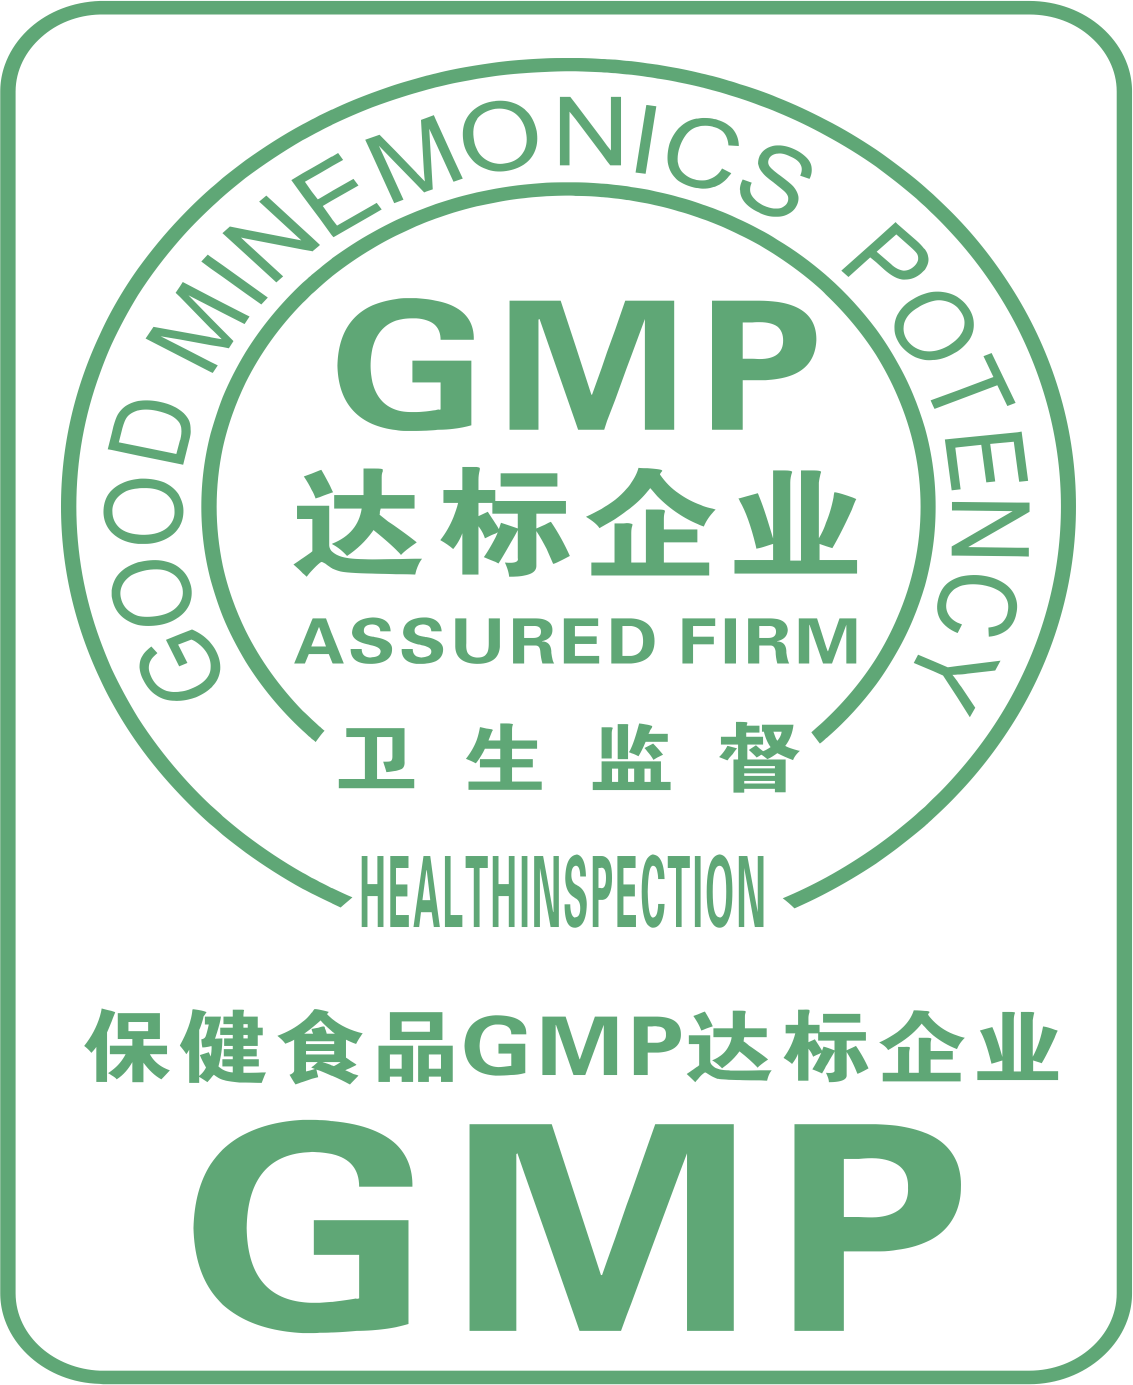 Food SC127 (GMP)  certification